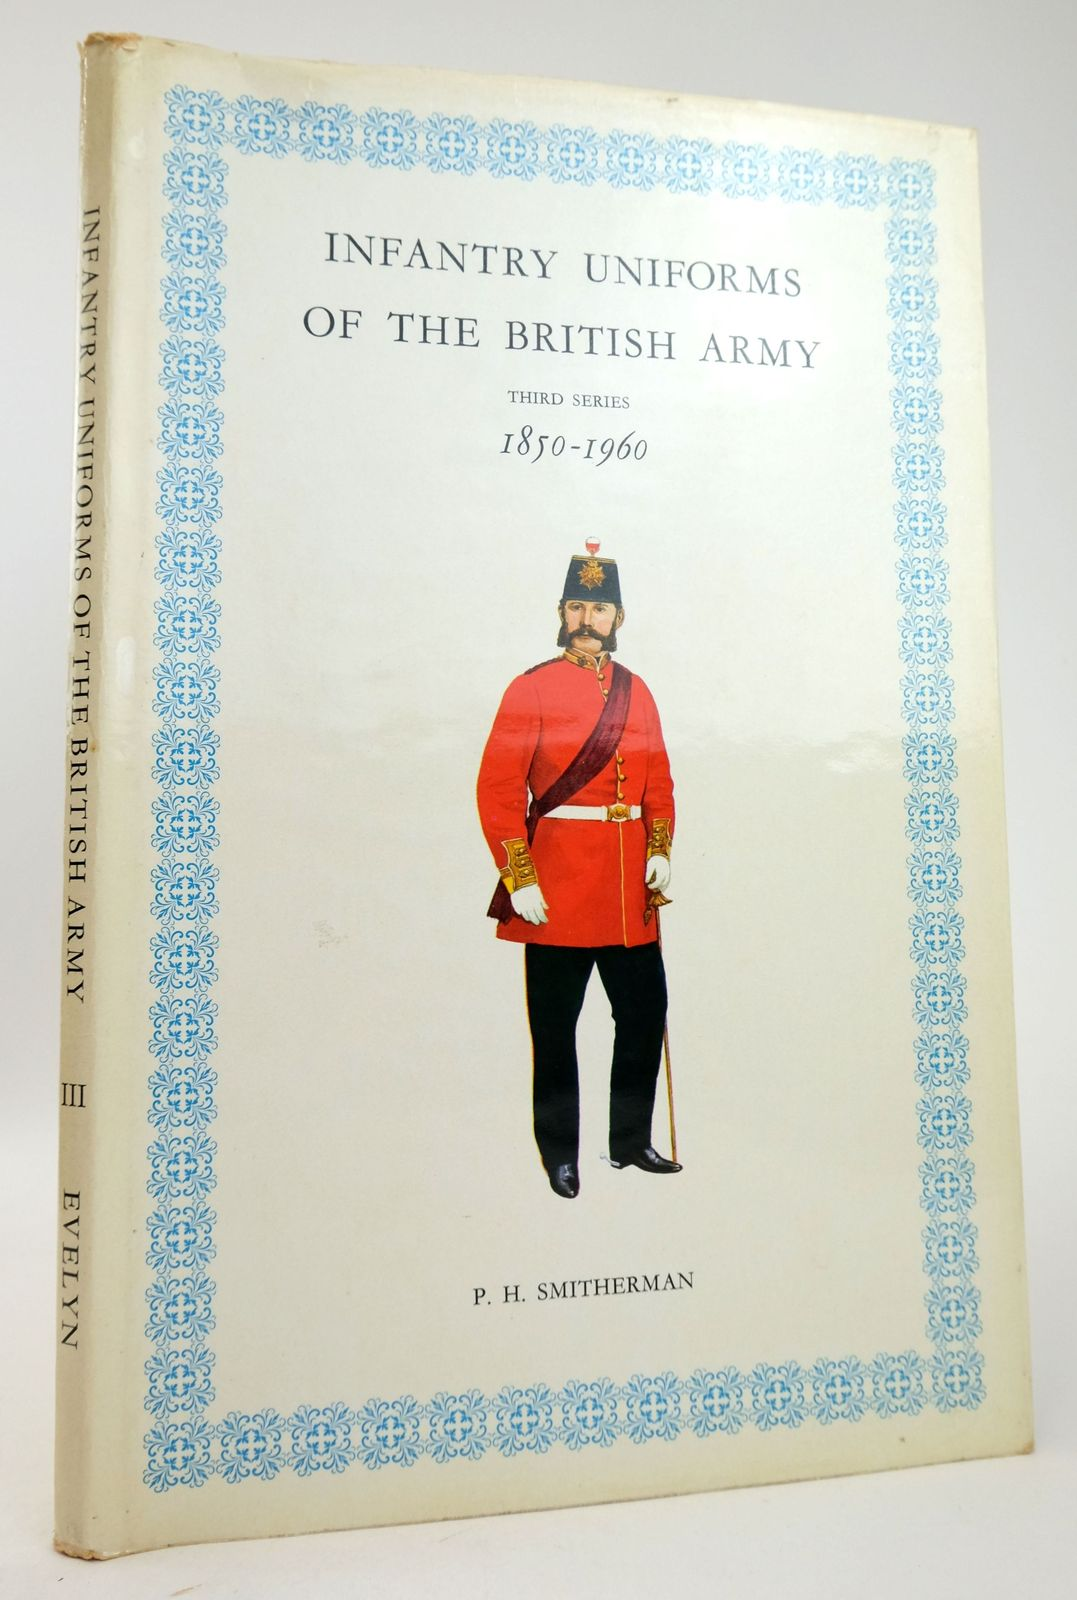 Photo of INFANTRY UNIFORMS OF THE BRITISH ARMY 1850-1960 written by Smitherman, P.H. illustrated by Smitherman, P.H. published by Hugh Evelyn (STOCK CODE: 1819976)  for sale by Stella & Rose's Books